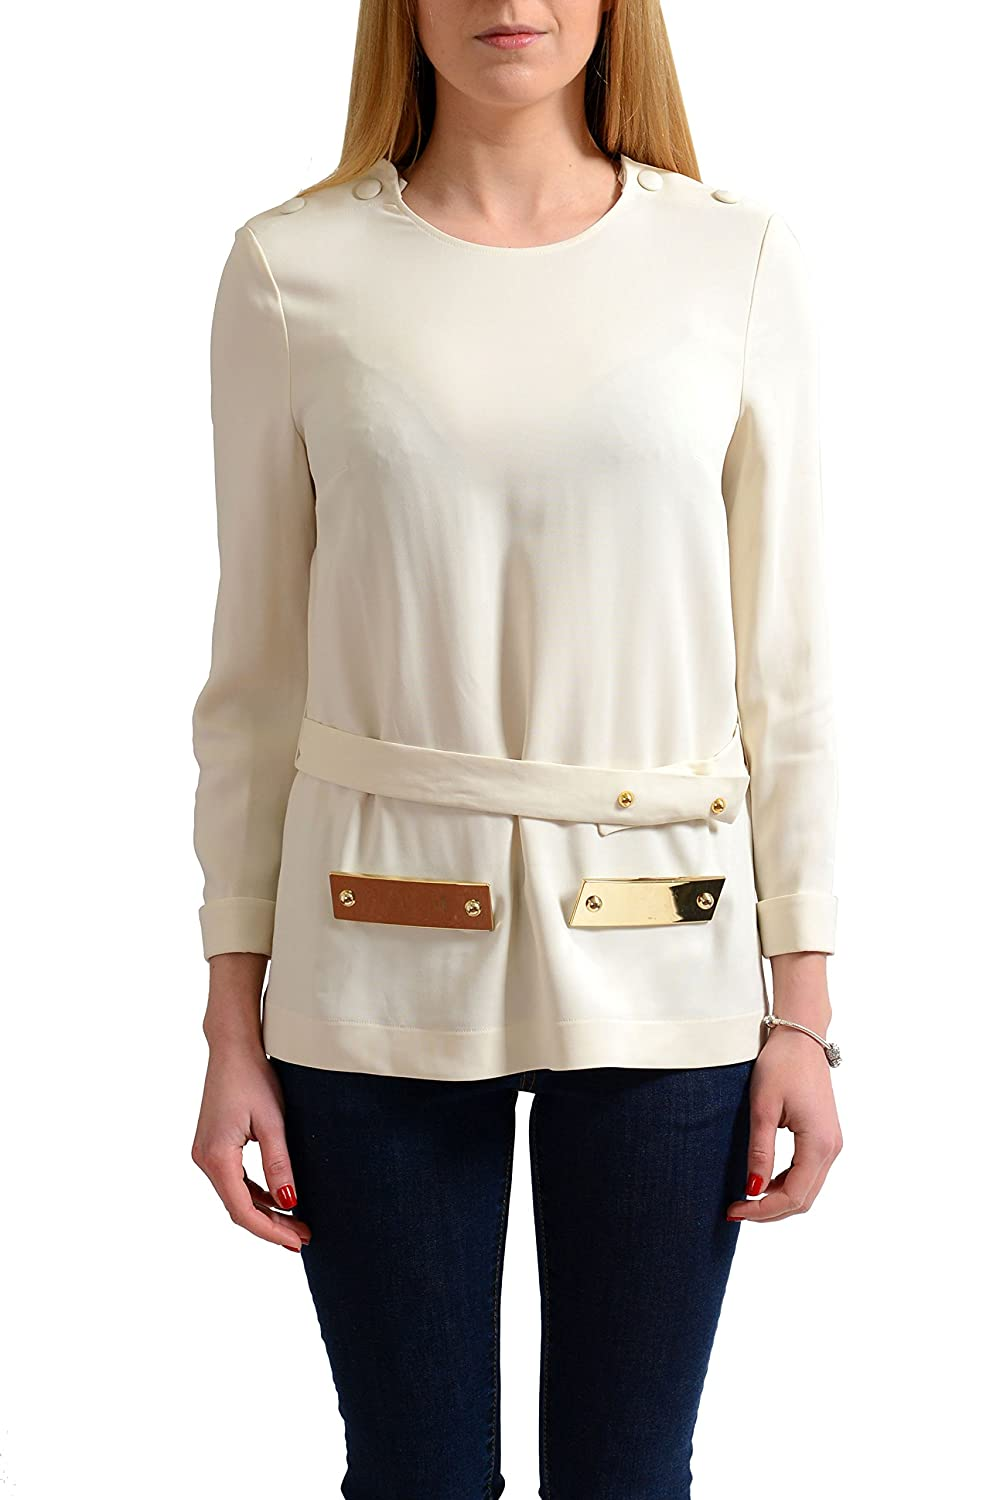 Just Cavalli Women's Cream Beige Long Sleeve Blouse Top US S IT 40